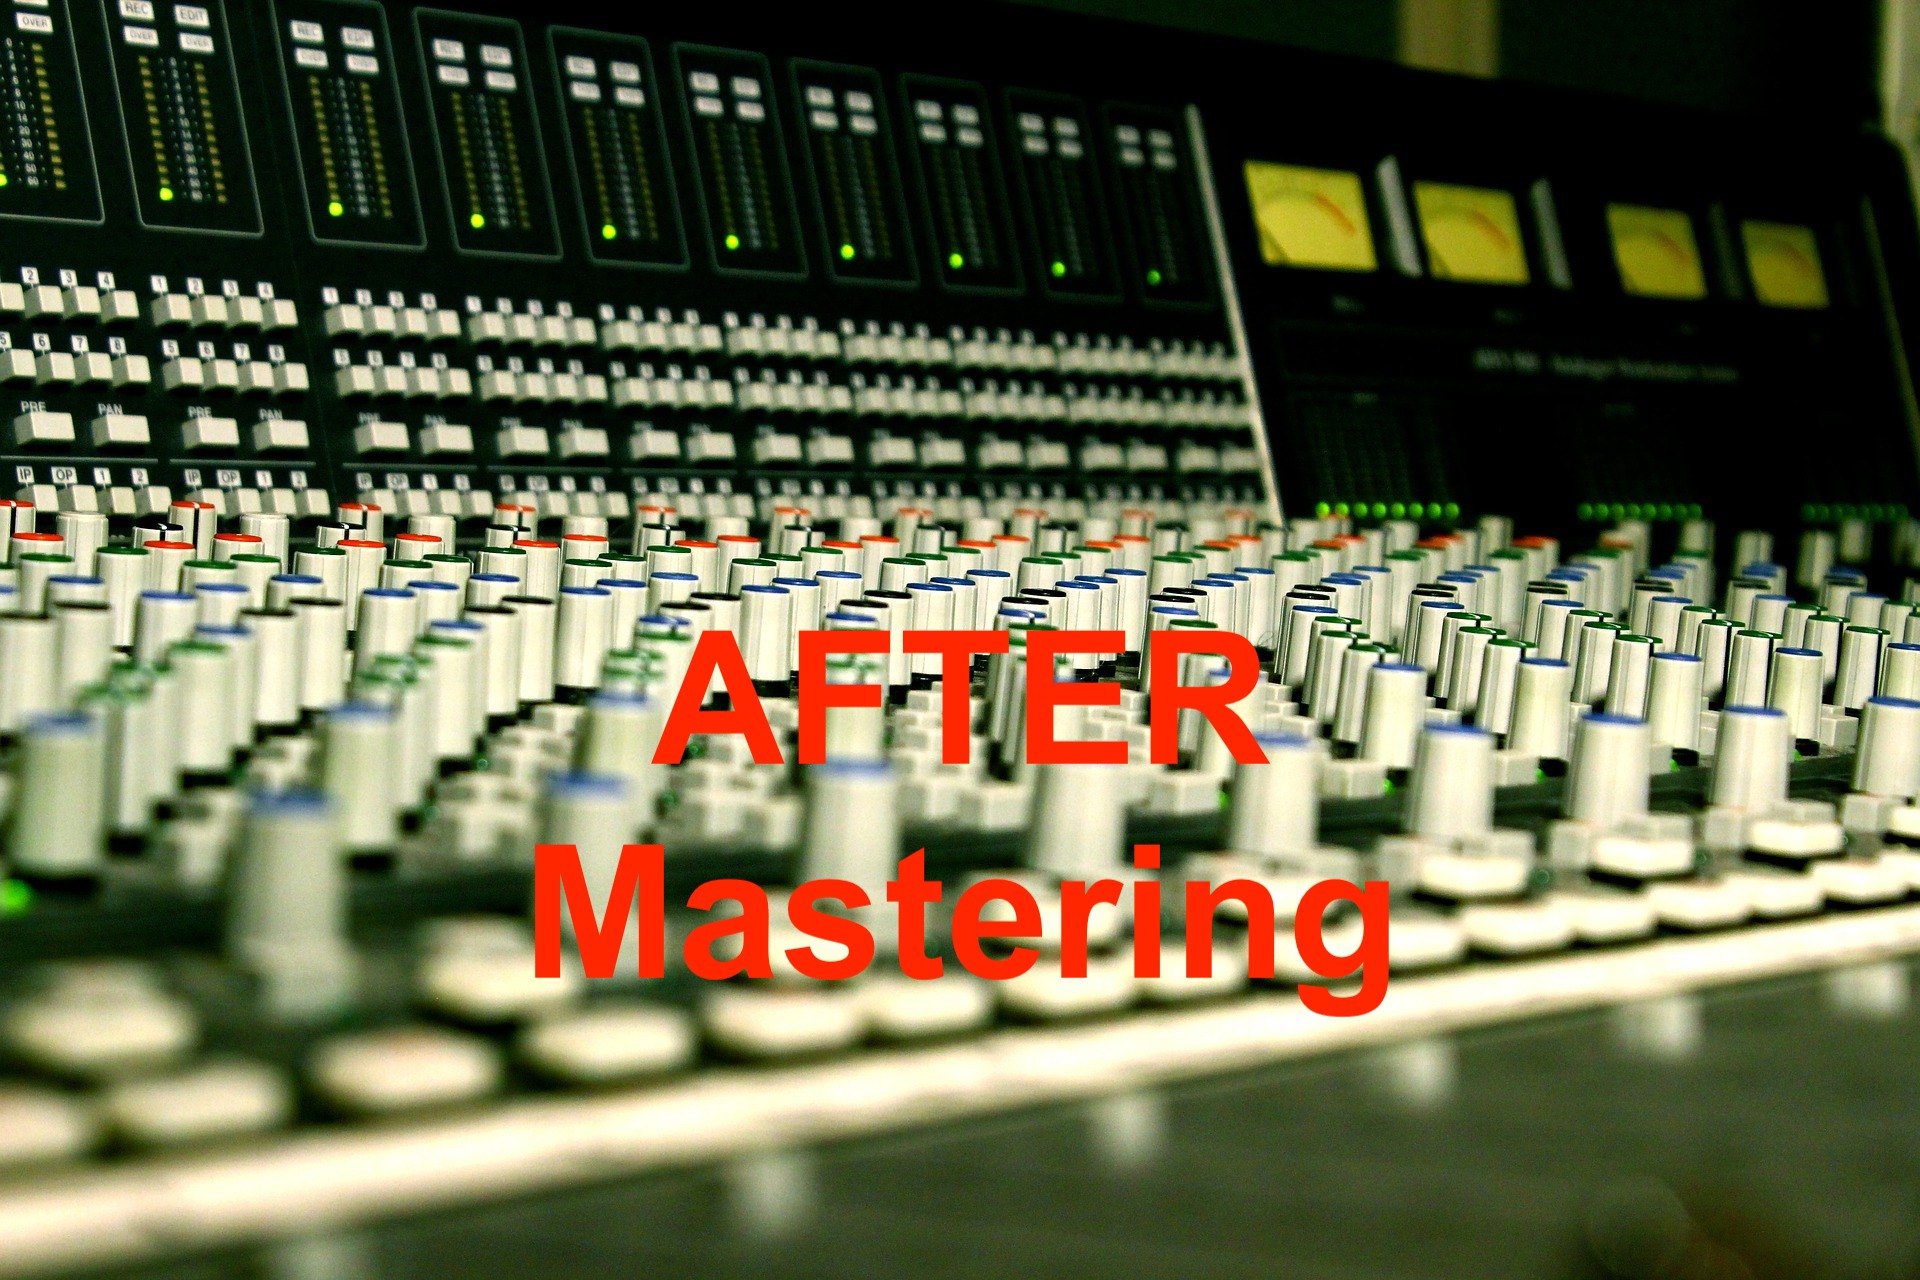 New online service: Mixing & Mastering!